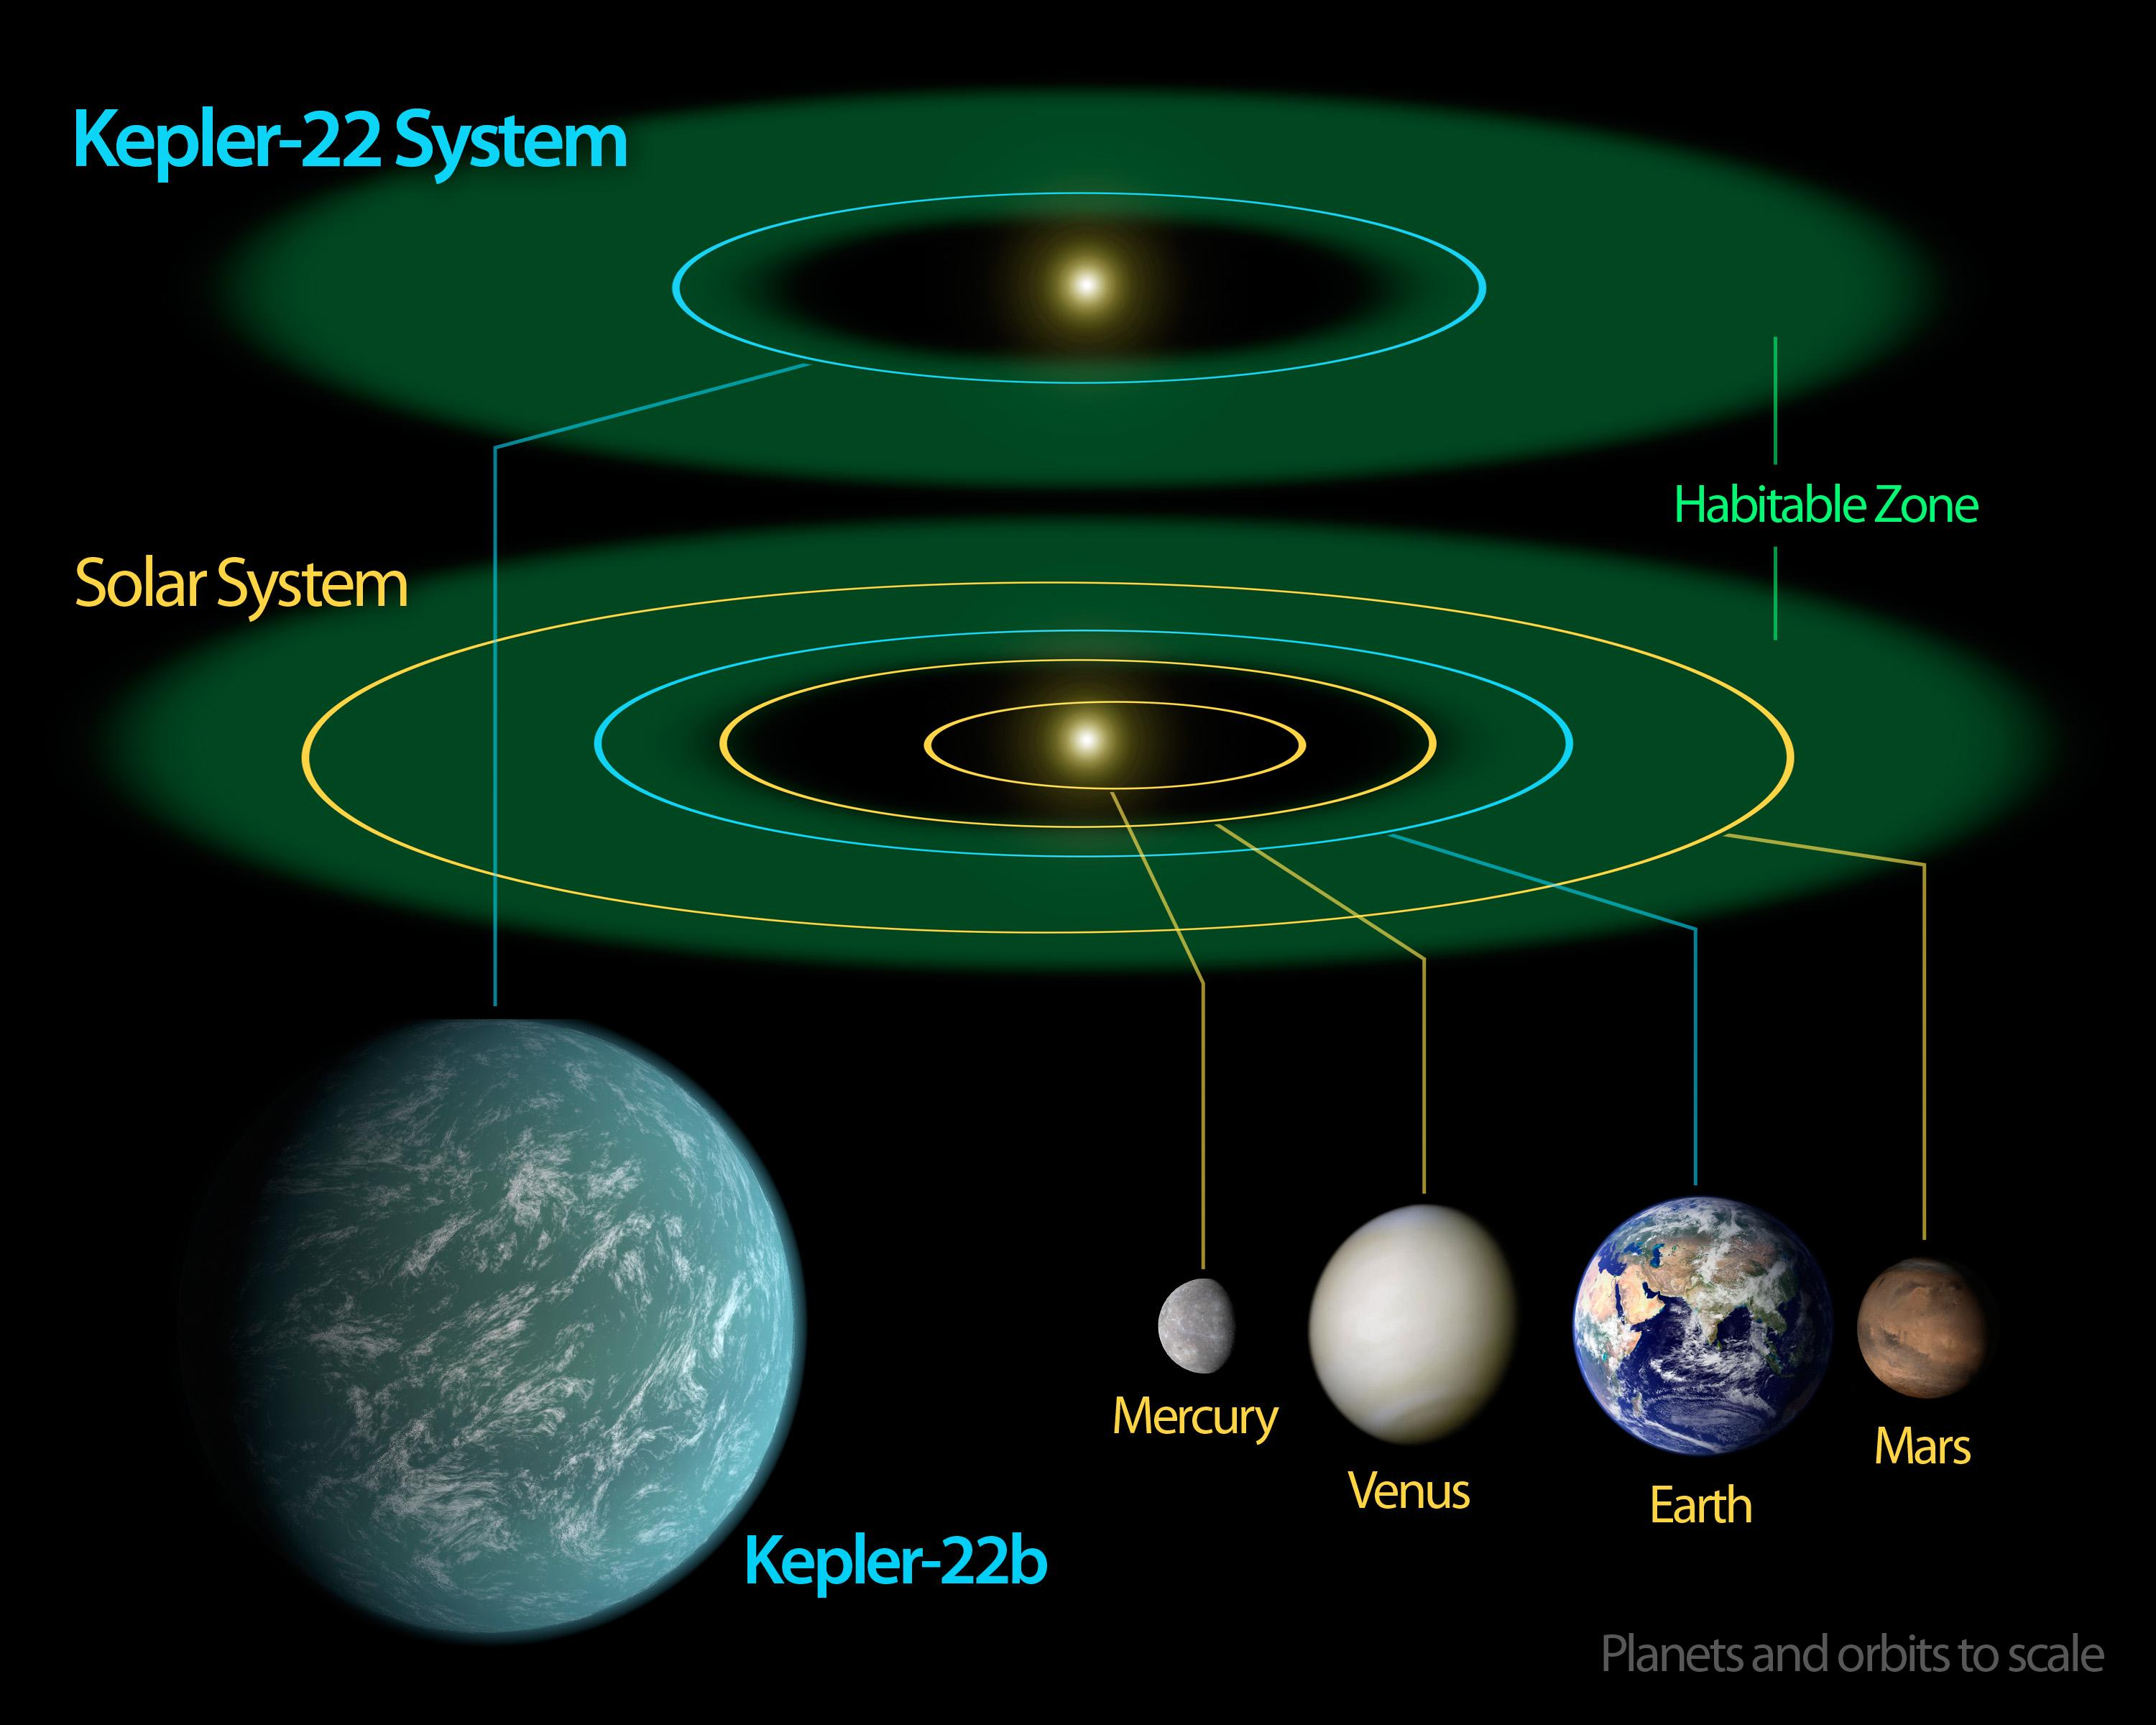 Kepler-22b - Comfortably Circling within the Habitable Zone | NASA